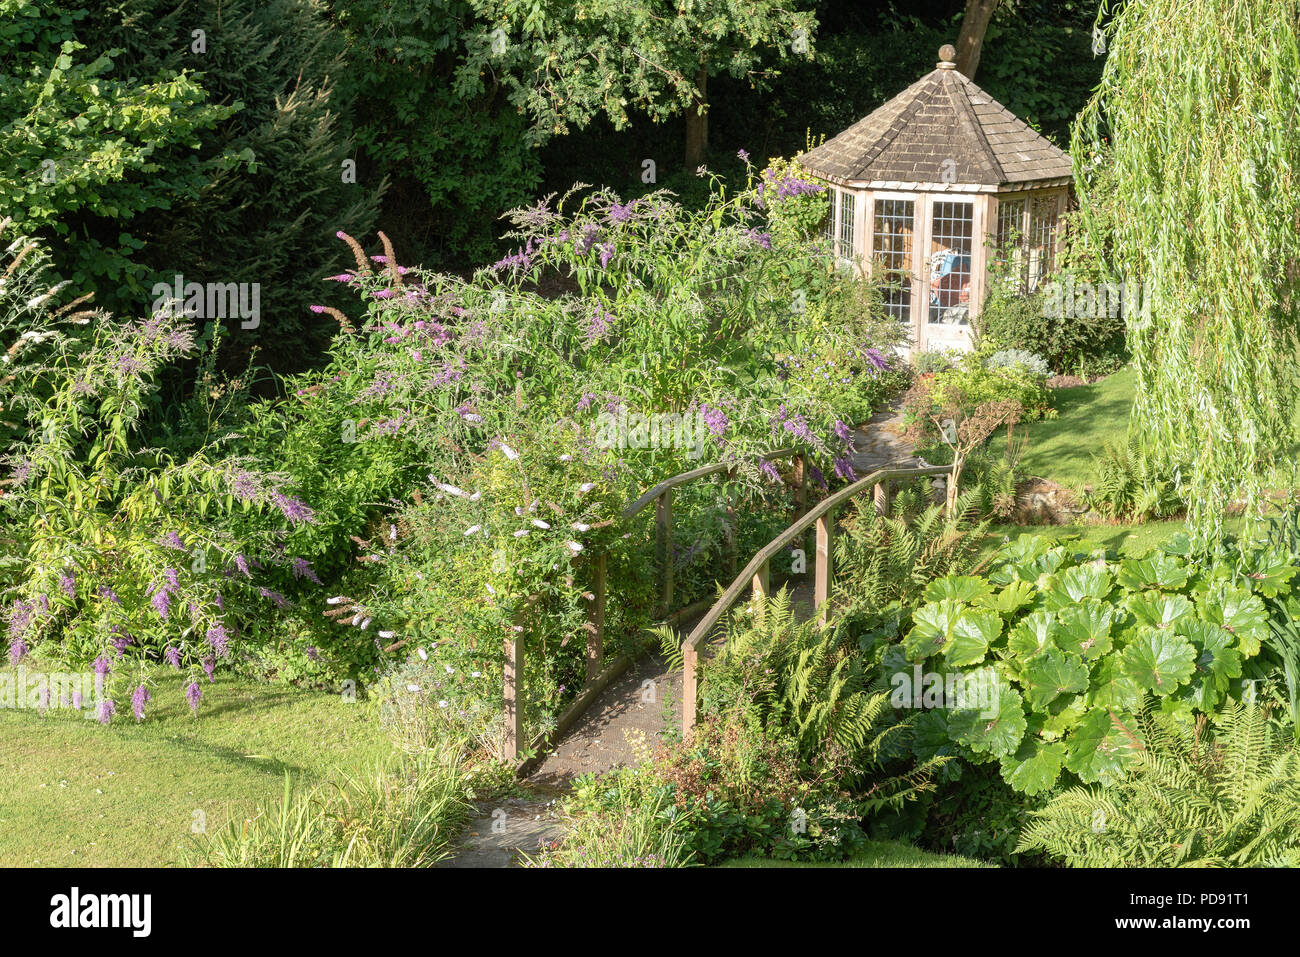 Overview of a summer house and wooden bridge in an English country garden - Stock Image